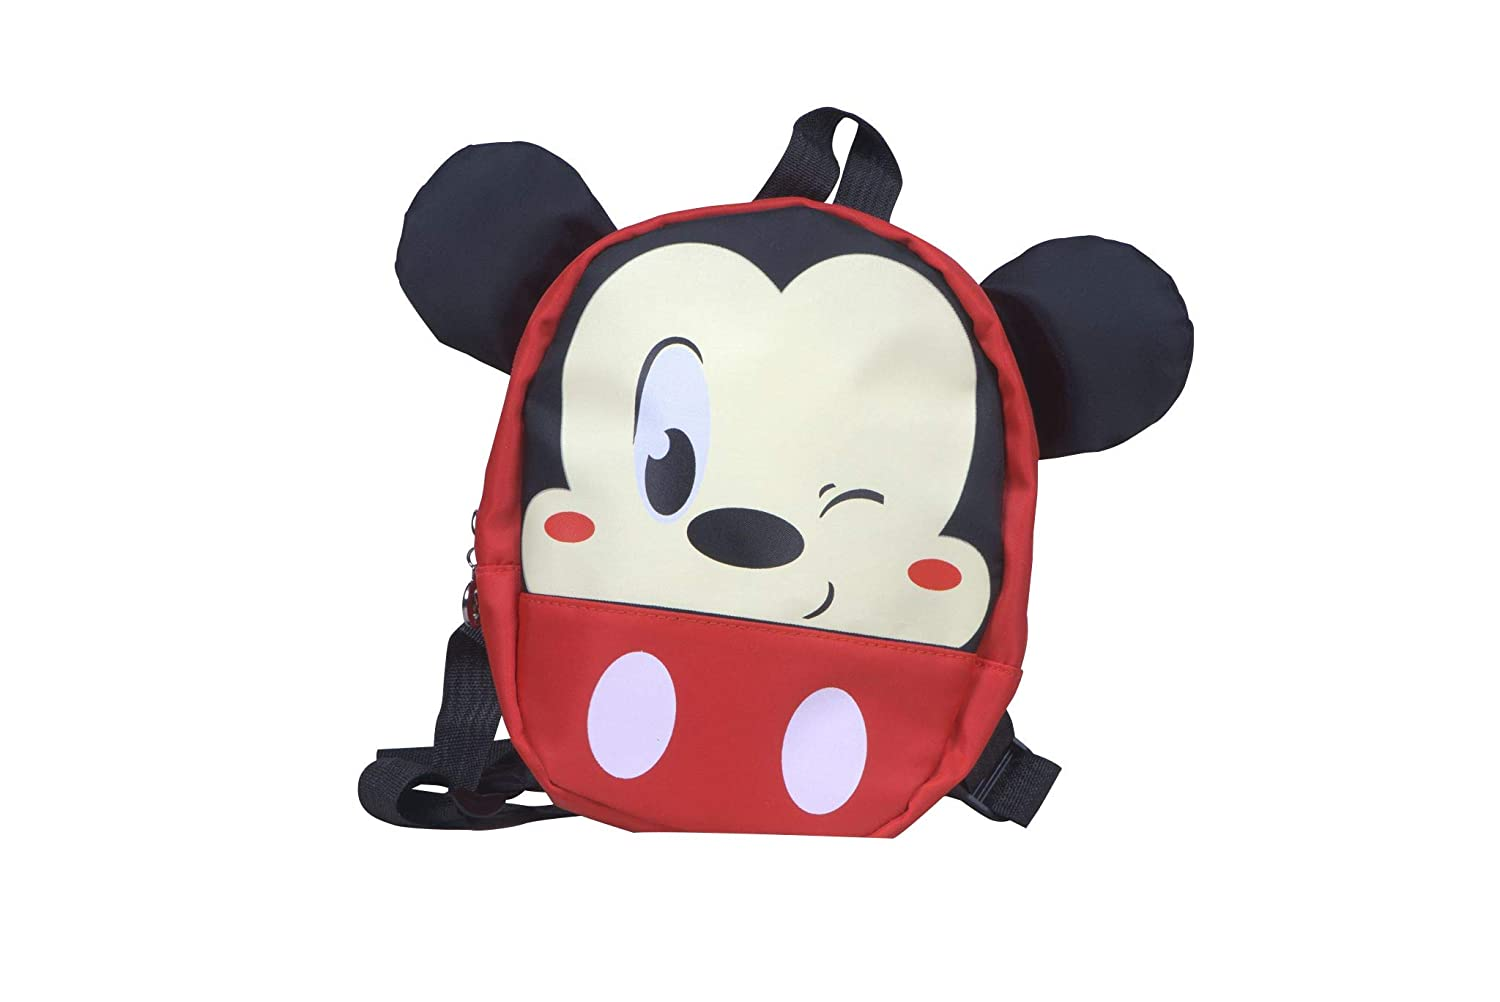 Nonika Toddler Kid Lunch Diaper Weather Resistant Bag with Safety Walking Leash - Super Cute Must Have Item (RoundMickey)